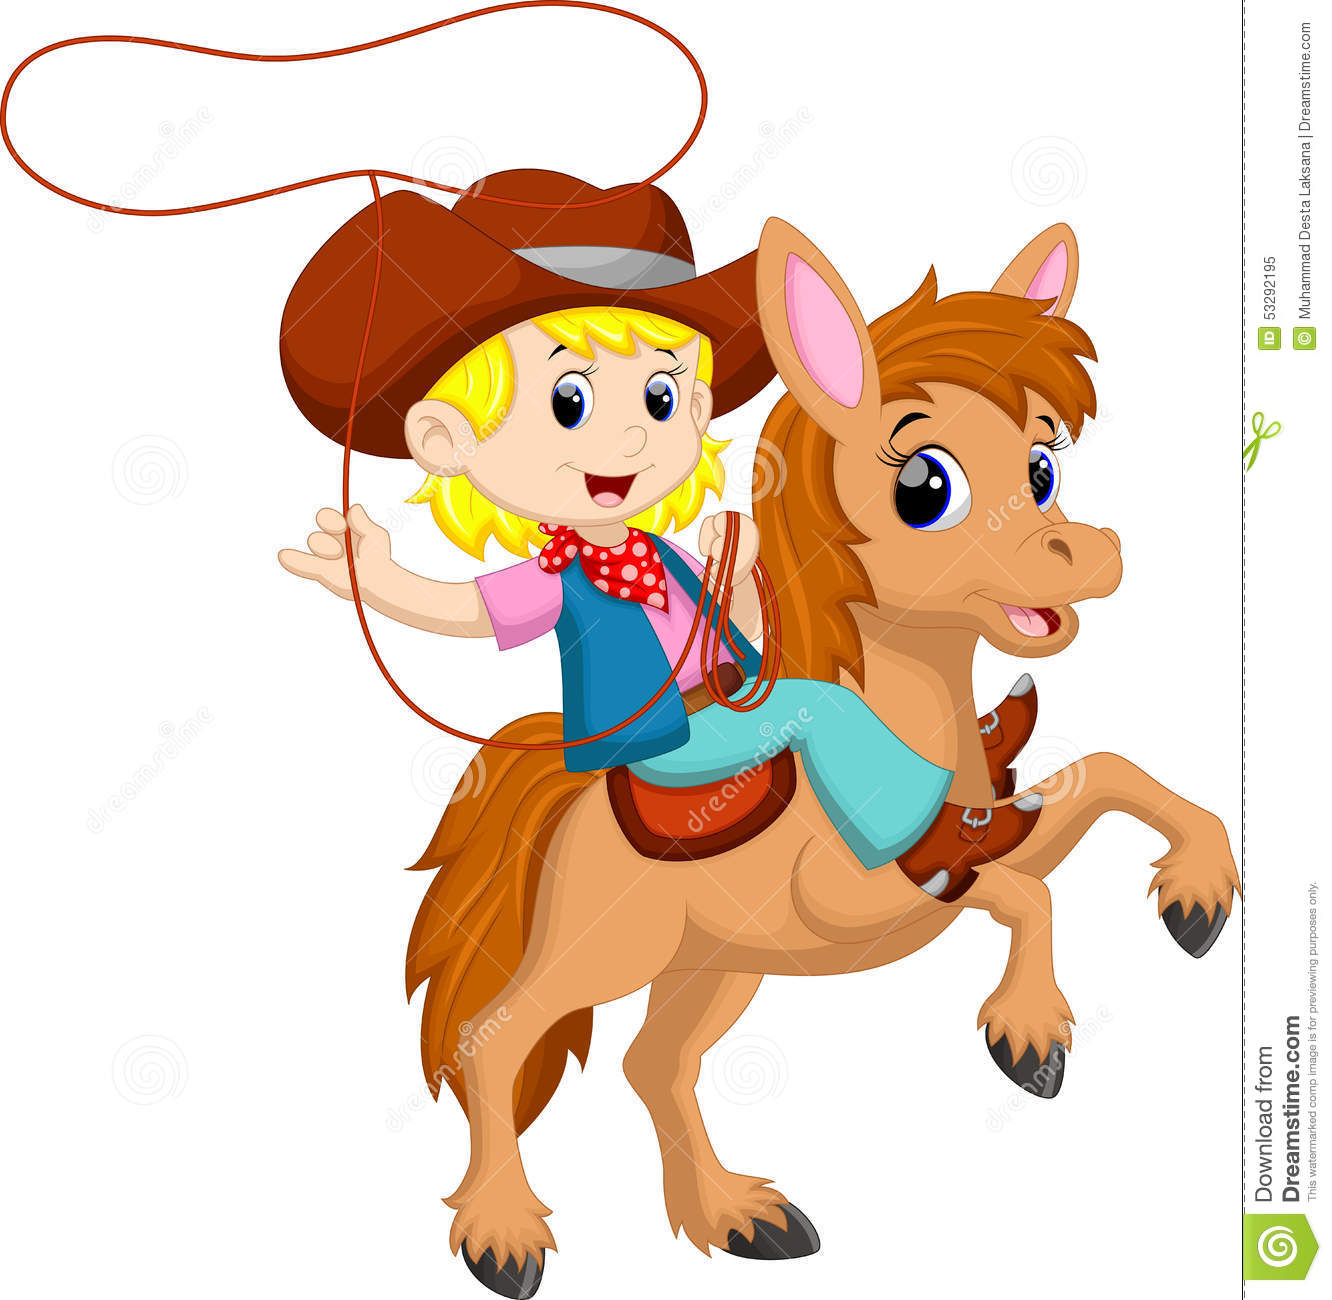 Cowgirl clipart roundup Clipart On Lasso Cowgirl Horse